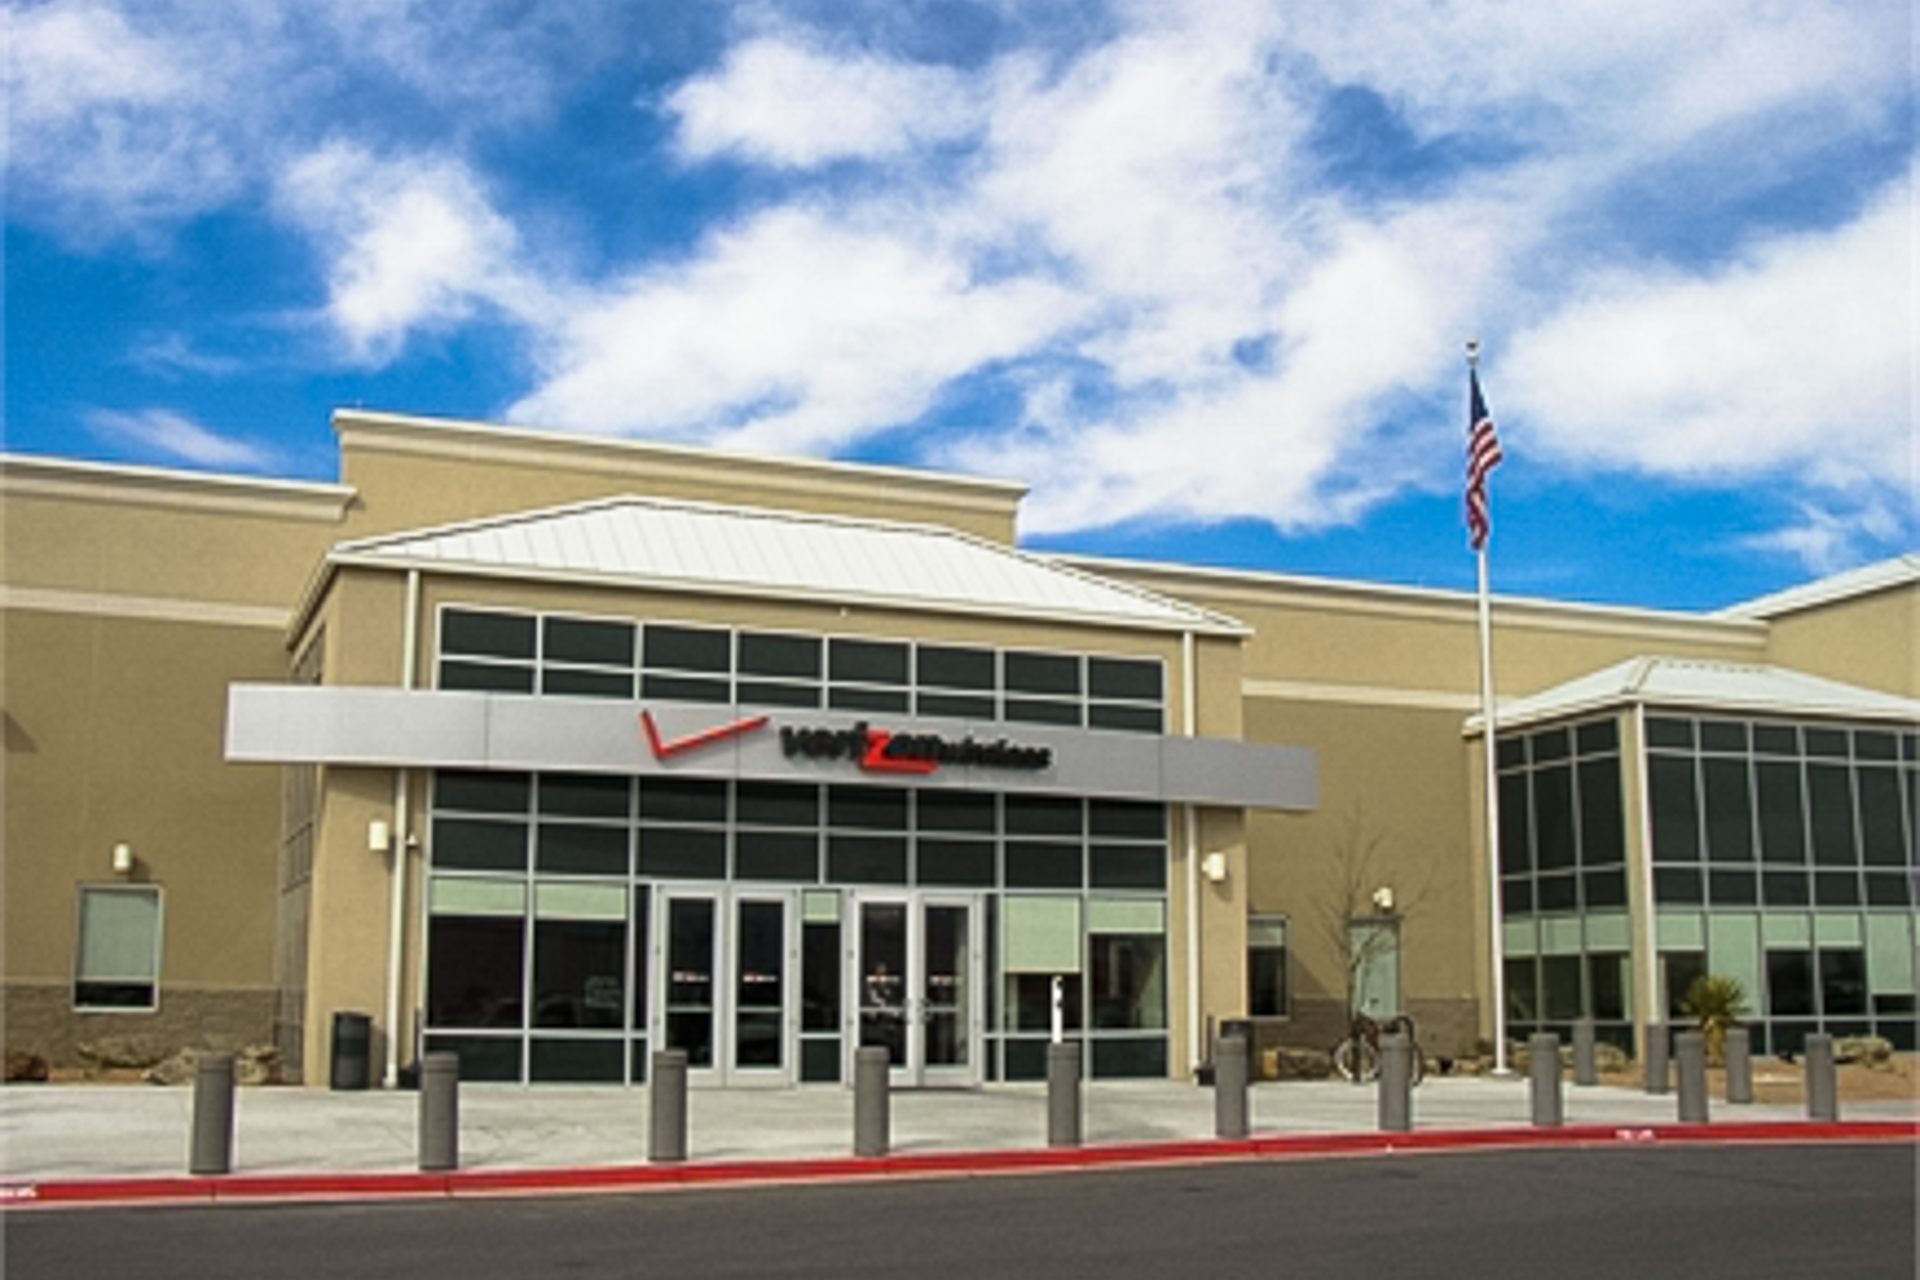 Track record recently closed transactions nnn fitness - Burlington coat factory garden city ...